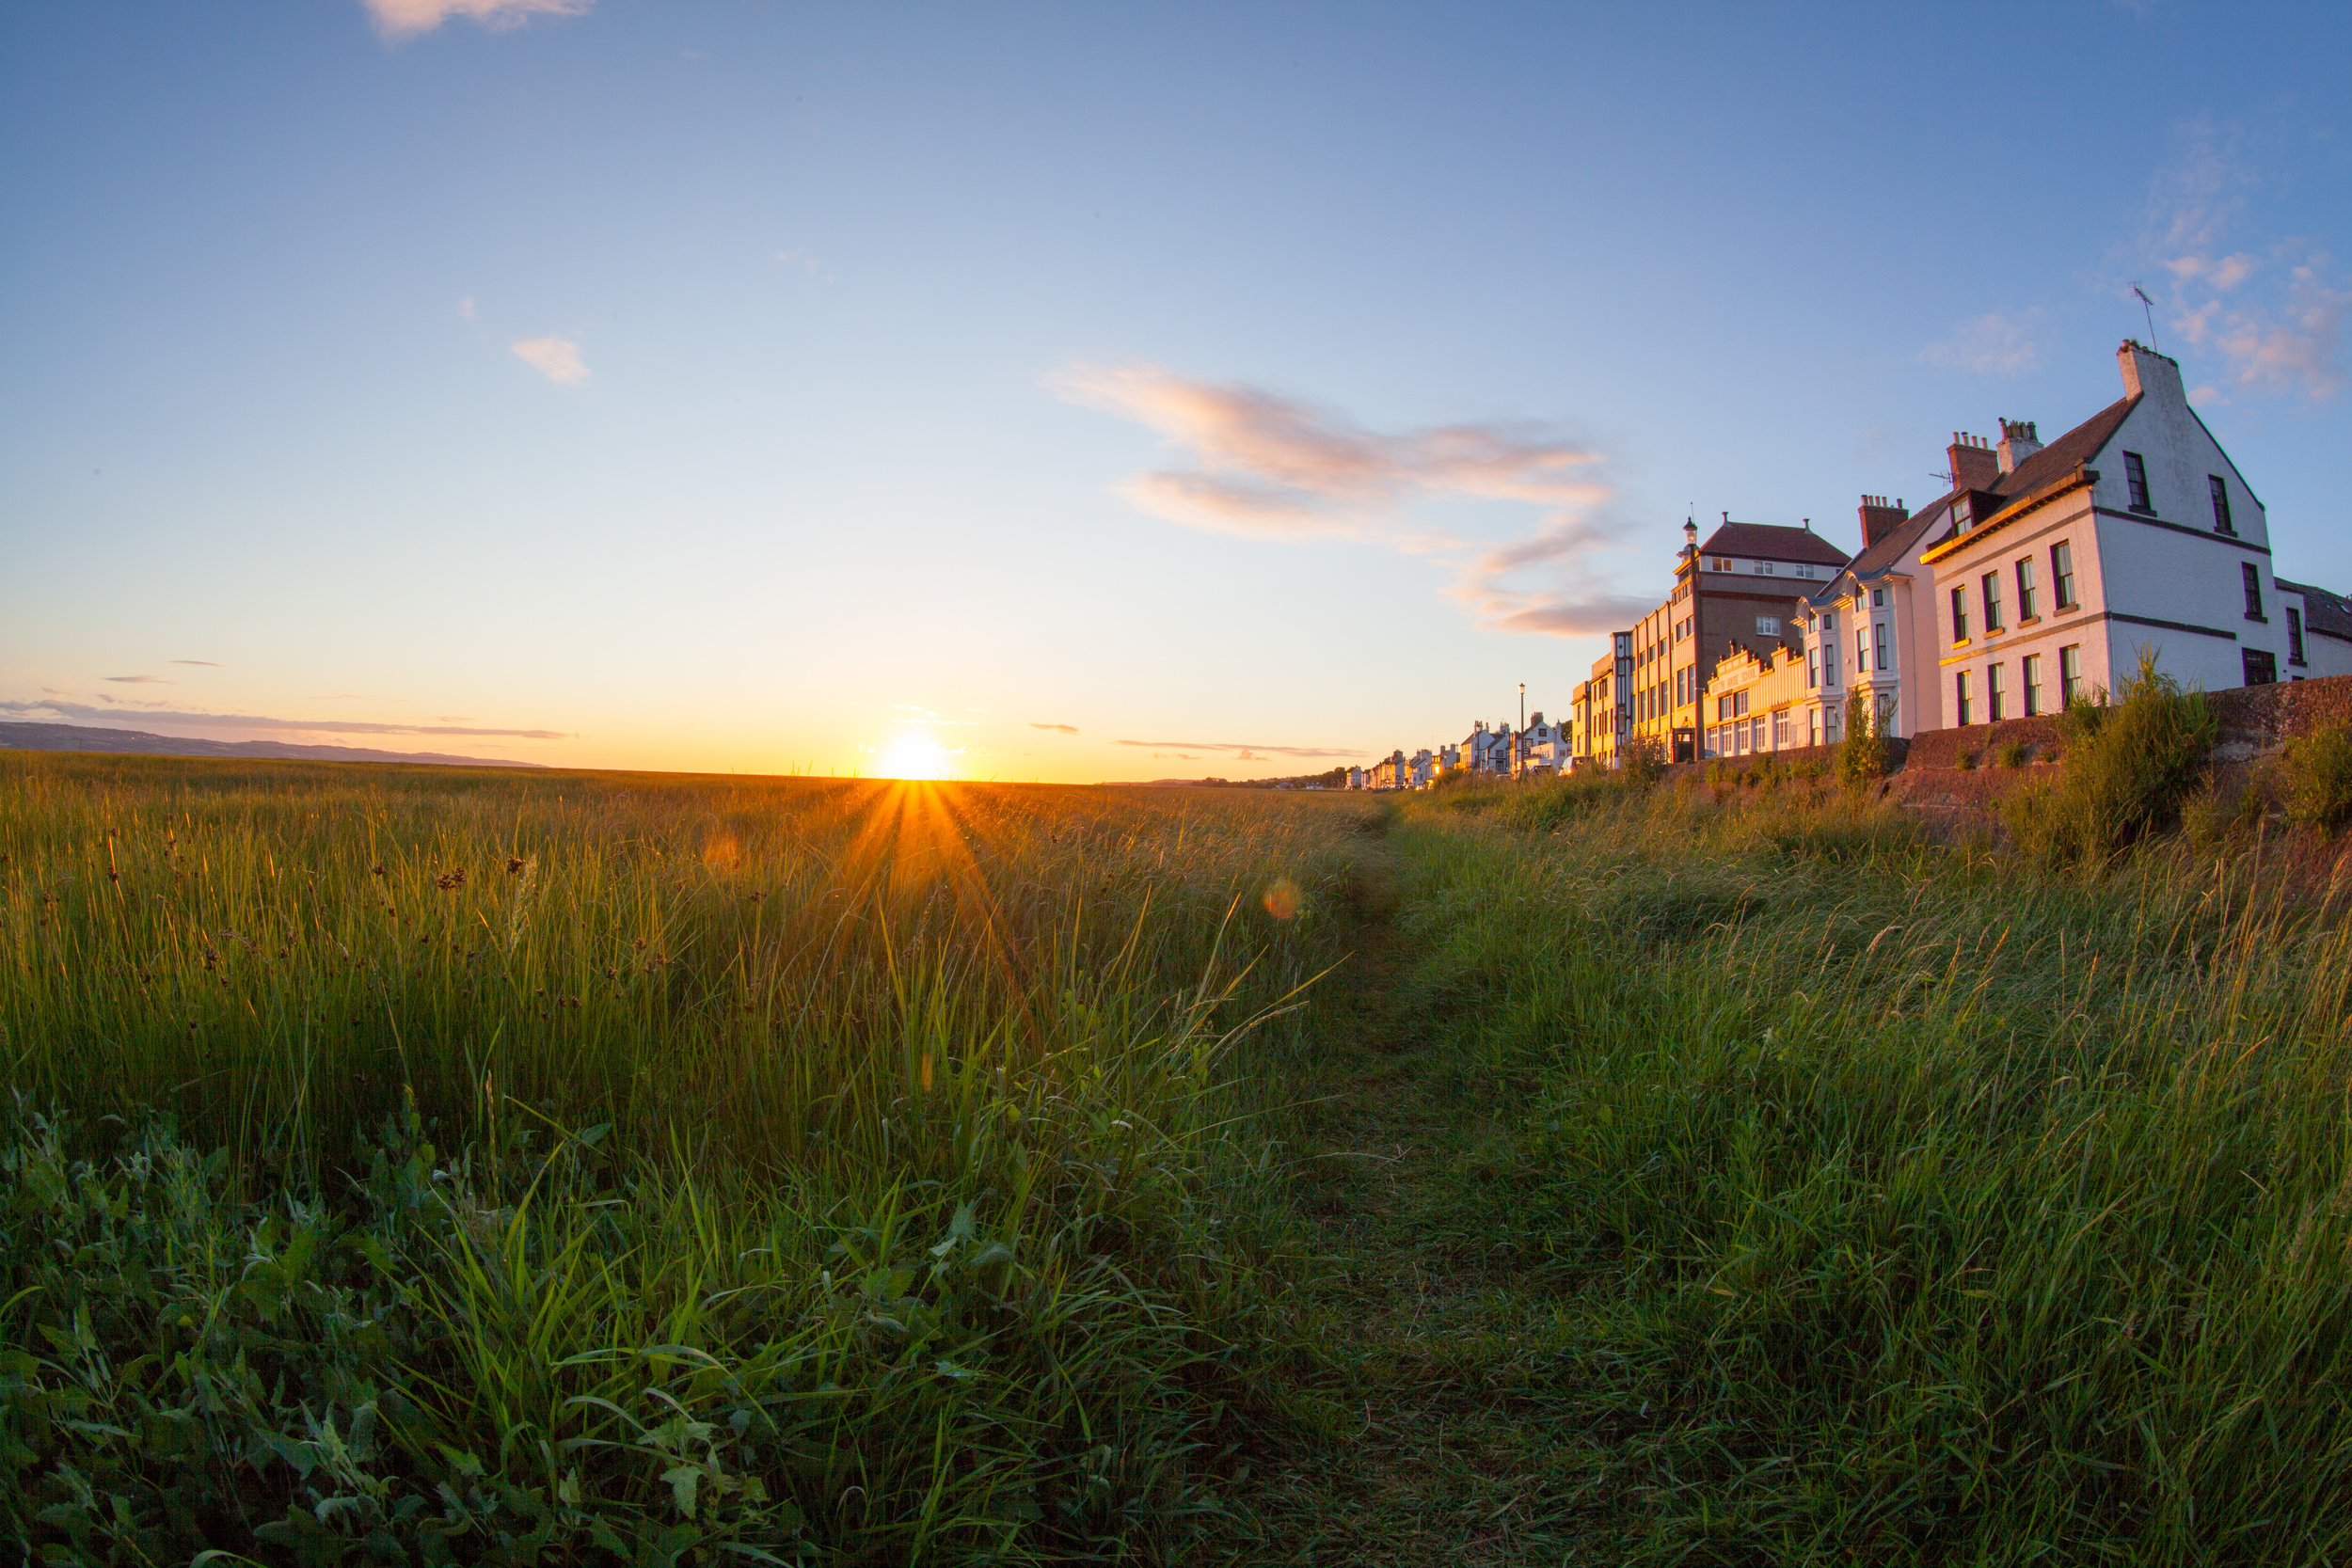 The sun setting over a field and the seafront of Neston in England.